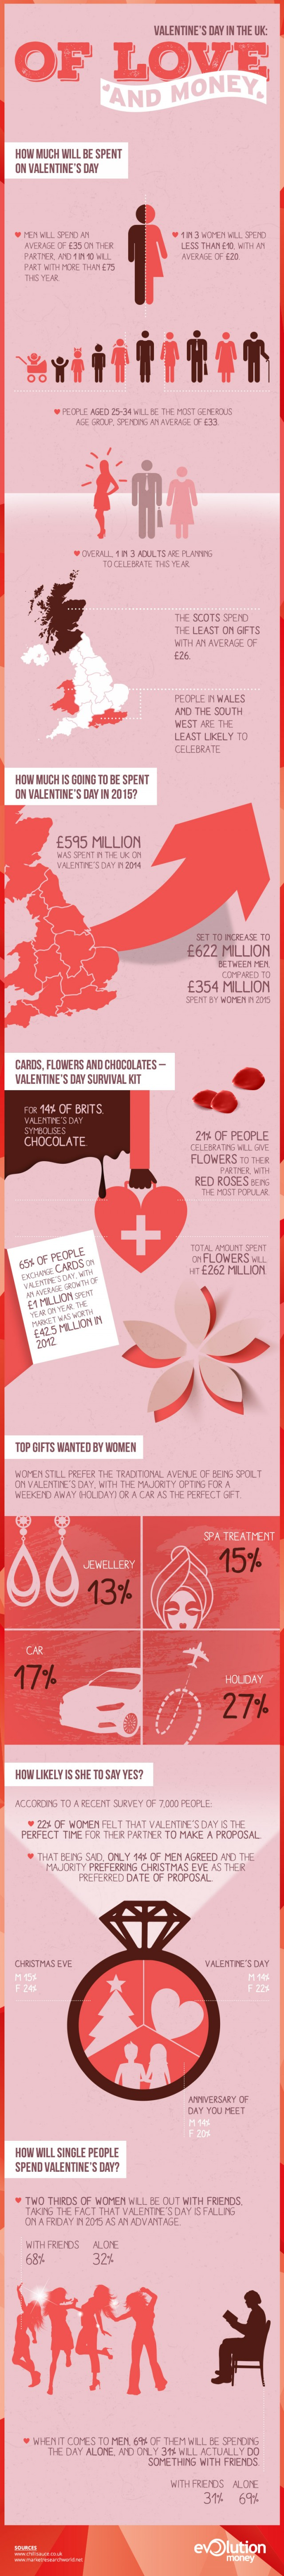 Evolution_Valentines_infographic-640x5806